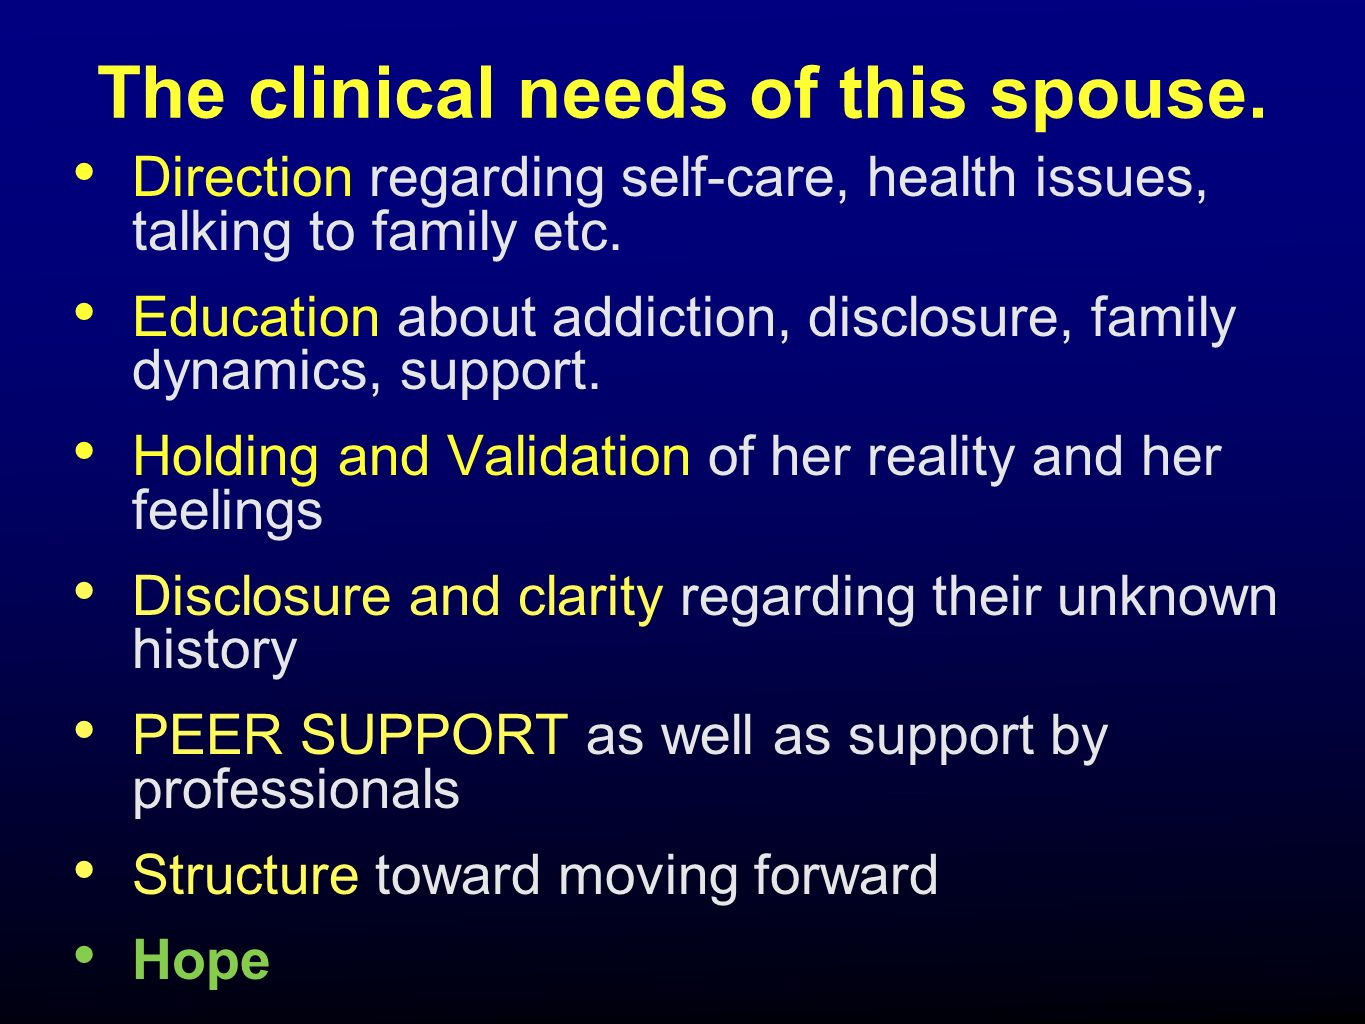 The clinical needs of this spouse.